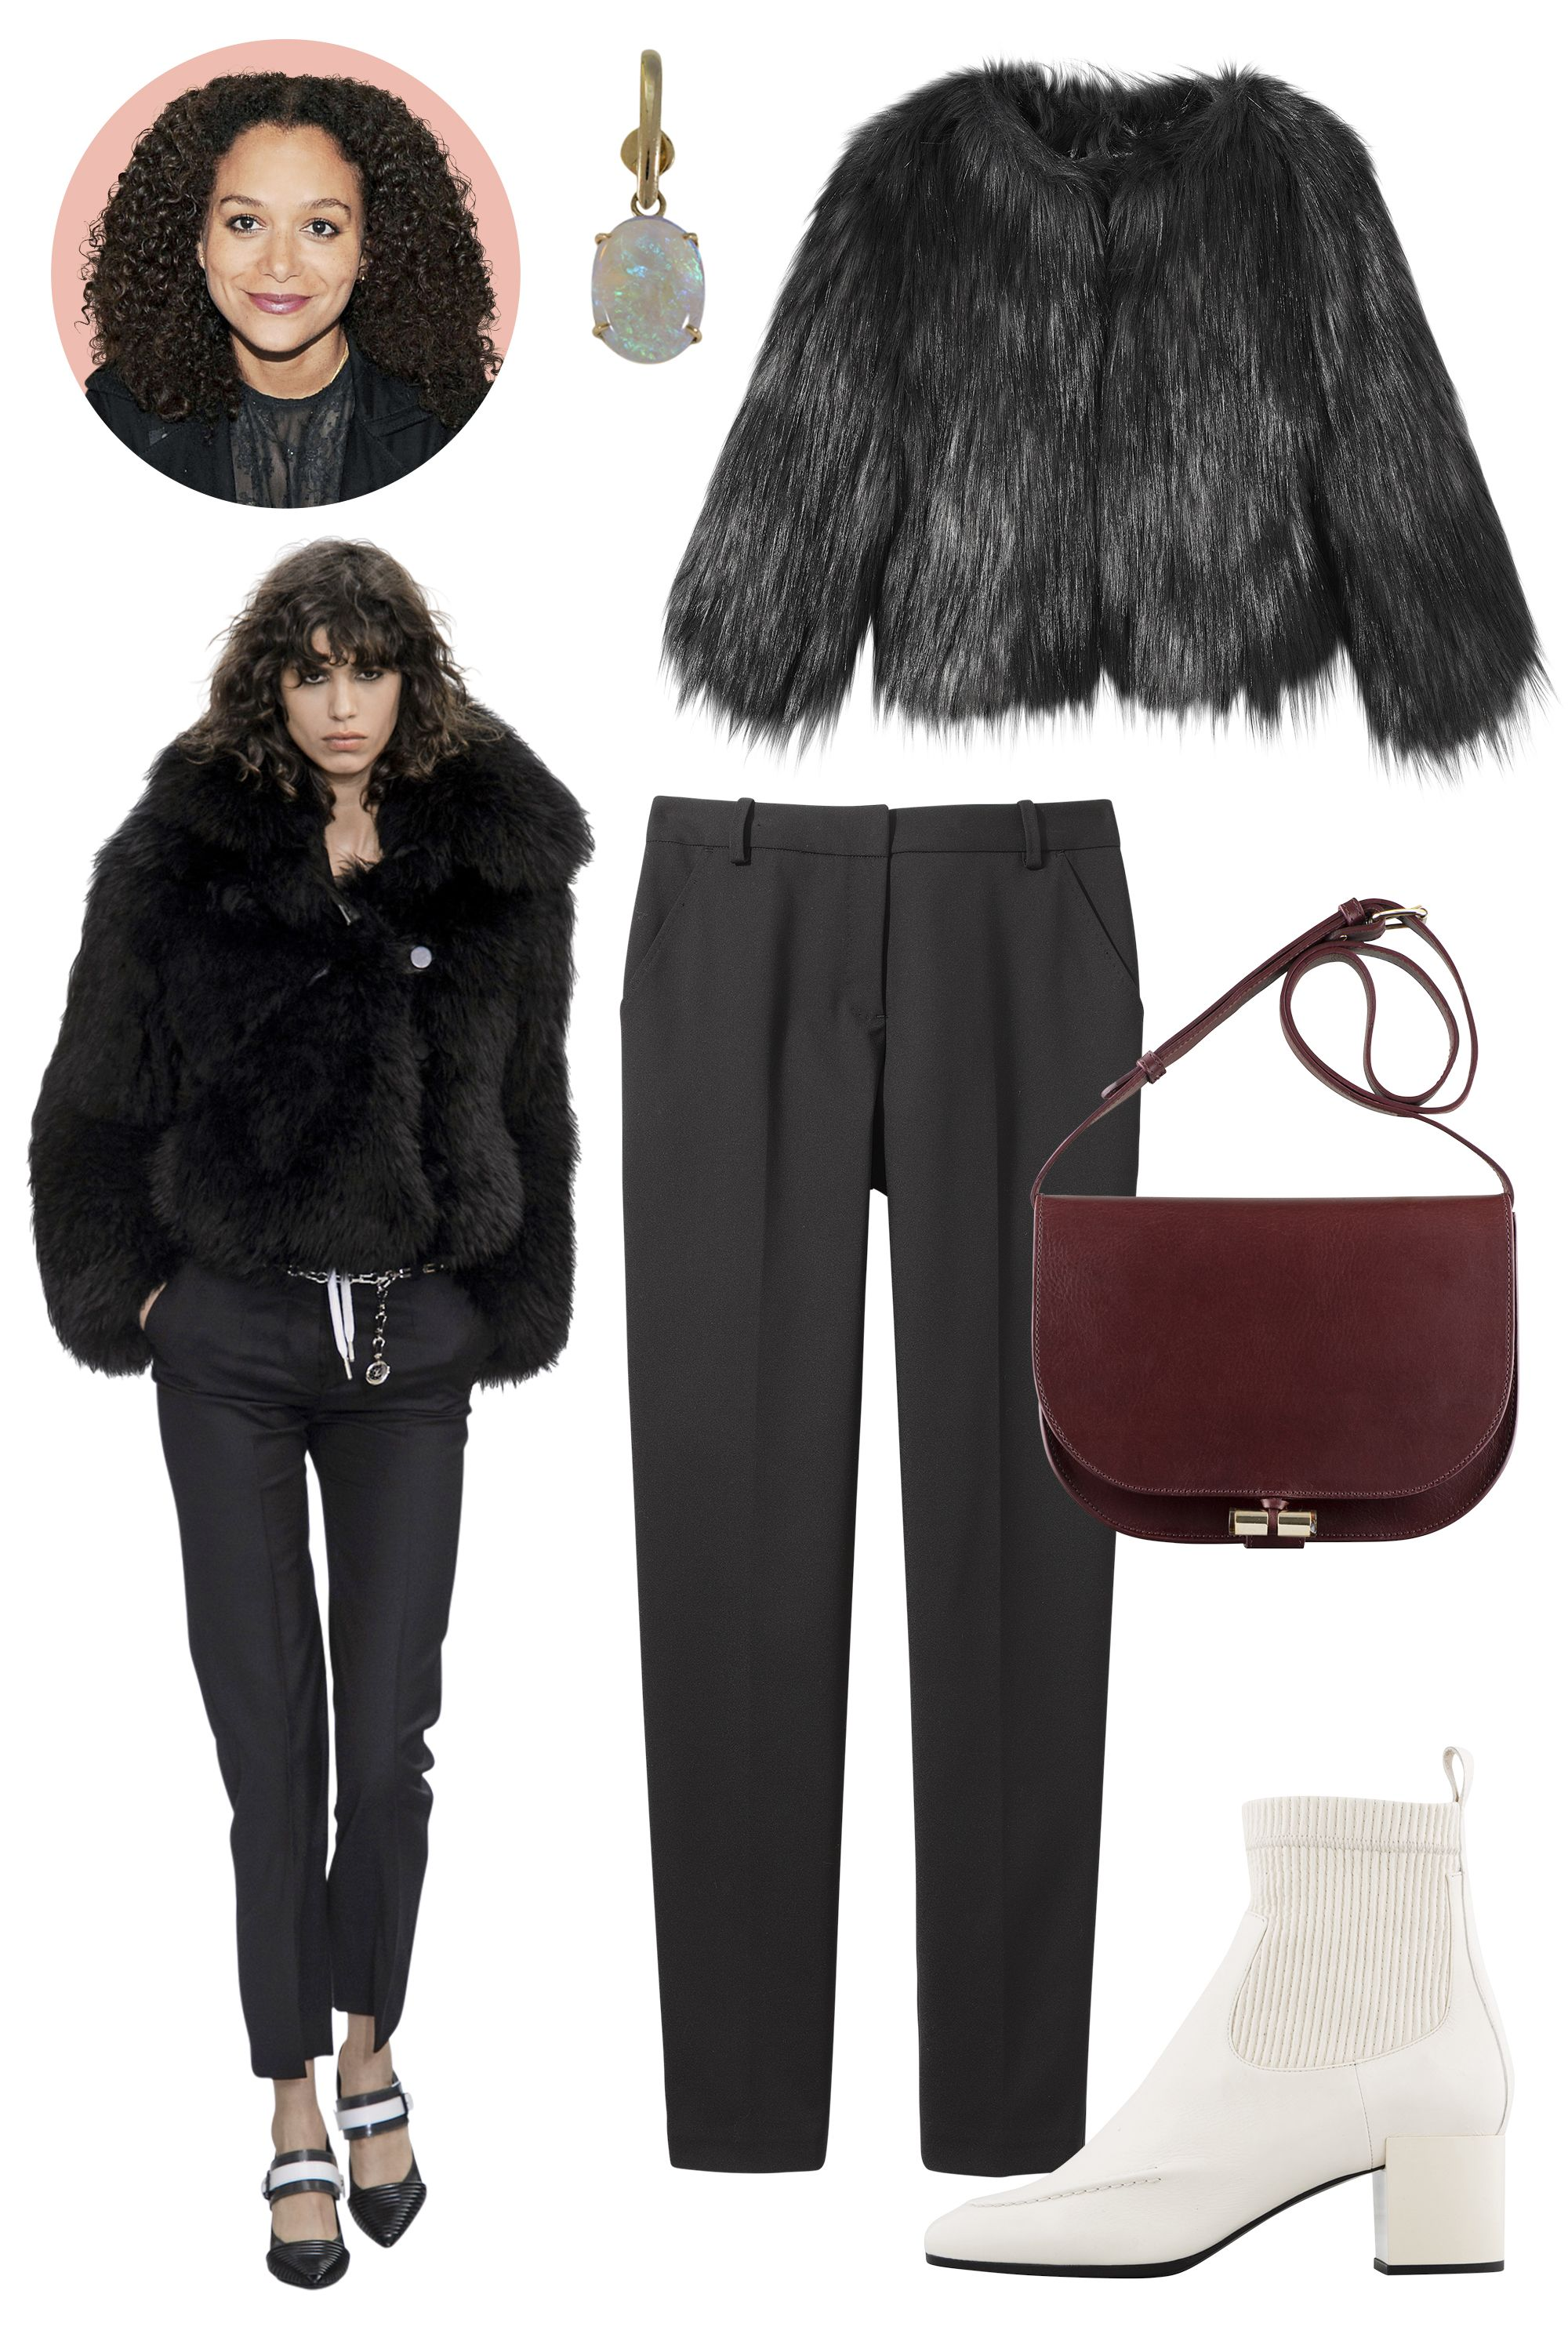 "<p><strong>Inspiration: </strong>Louis Vuitton, Fall 2015</p><p><strong>Shop the Look: </strong>Diesel Faux-Fur Jacket, $398; <a href=""http://shop.diesel.com/homepage?gclid=CjwKEAjwovytBRCdxtyKqfL5nUISJACaugG1R4gJpjN2PWShKqWbS5_PQru0fdoBuFVBZbvhzhOvSxoCzCHw_wcB&gclsrc=aw.ds"">diesel.com</a>; Rag & Bone Wool Trousers, $395; <a href=""http://www.rag-bone.com/womens/pants/montgomery-pant-W2557157T.html#start=1"">rag-bone.com</a></p><p><strong><strong>Accessories</strong>: </strong>Ana Khouri Opal and Gold Earring, $4,768; Dover Street Market; A.P.C. Leather Handbag, $530; <a href=""http://usonline.apc.fr/june-bag-pxanh-f61093?utm_source=googleshopping&utm_medium=cse&utm_source=google&utm_medium=cse&utm_term=F61093&gclid=CjwKEAjwovytBRCdxtyKqfL5nUISJACaugG16vuCc5pgBjxTU0_tuioTqyPzIRcQAGXhnHL0ETZvuRoCAqjw_wcB#Black"">apc.fr</a>; Pierre Hardy Patent Leather Ankle Boot, $1,145; Collection at Blake, Chicago.</p>"